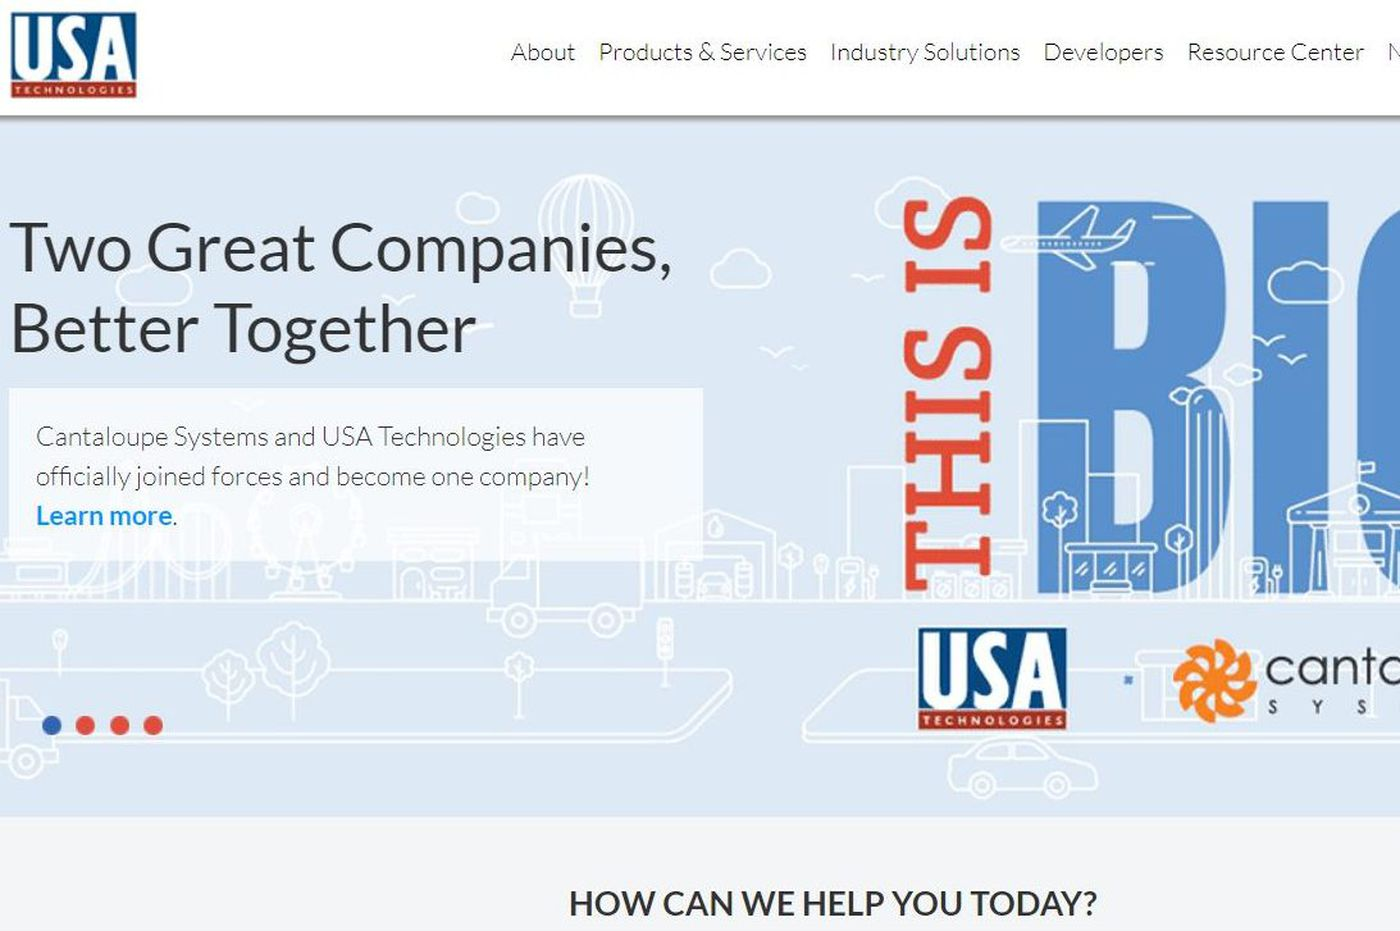 Fintech deal: USATech buys Cantaloupe Systems for $85M